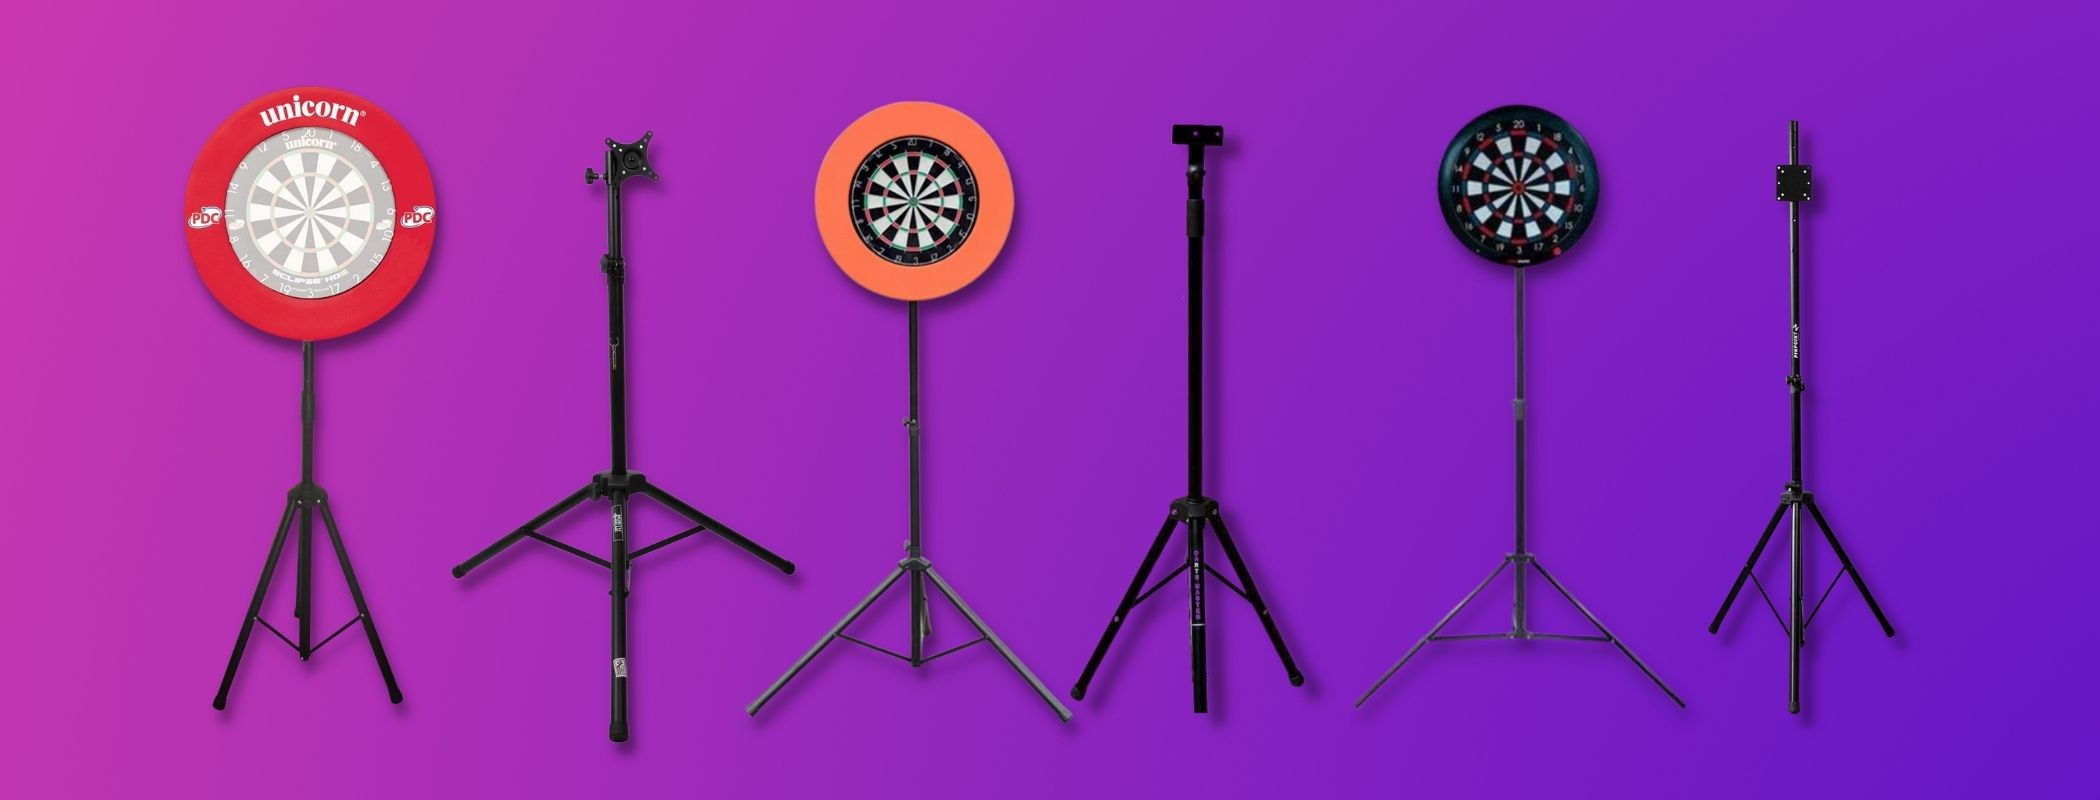 7 Best Dart Board Stands For 2021 (Reviewed Updated Apr 2021)